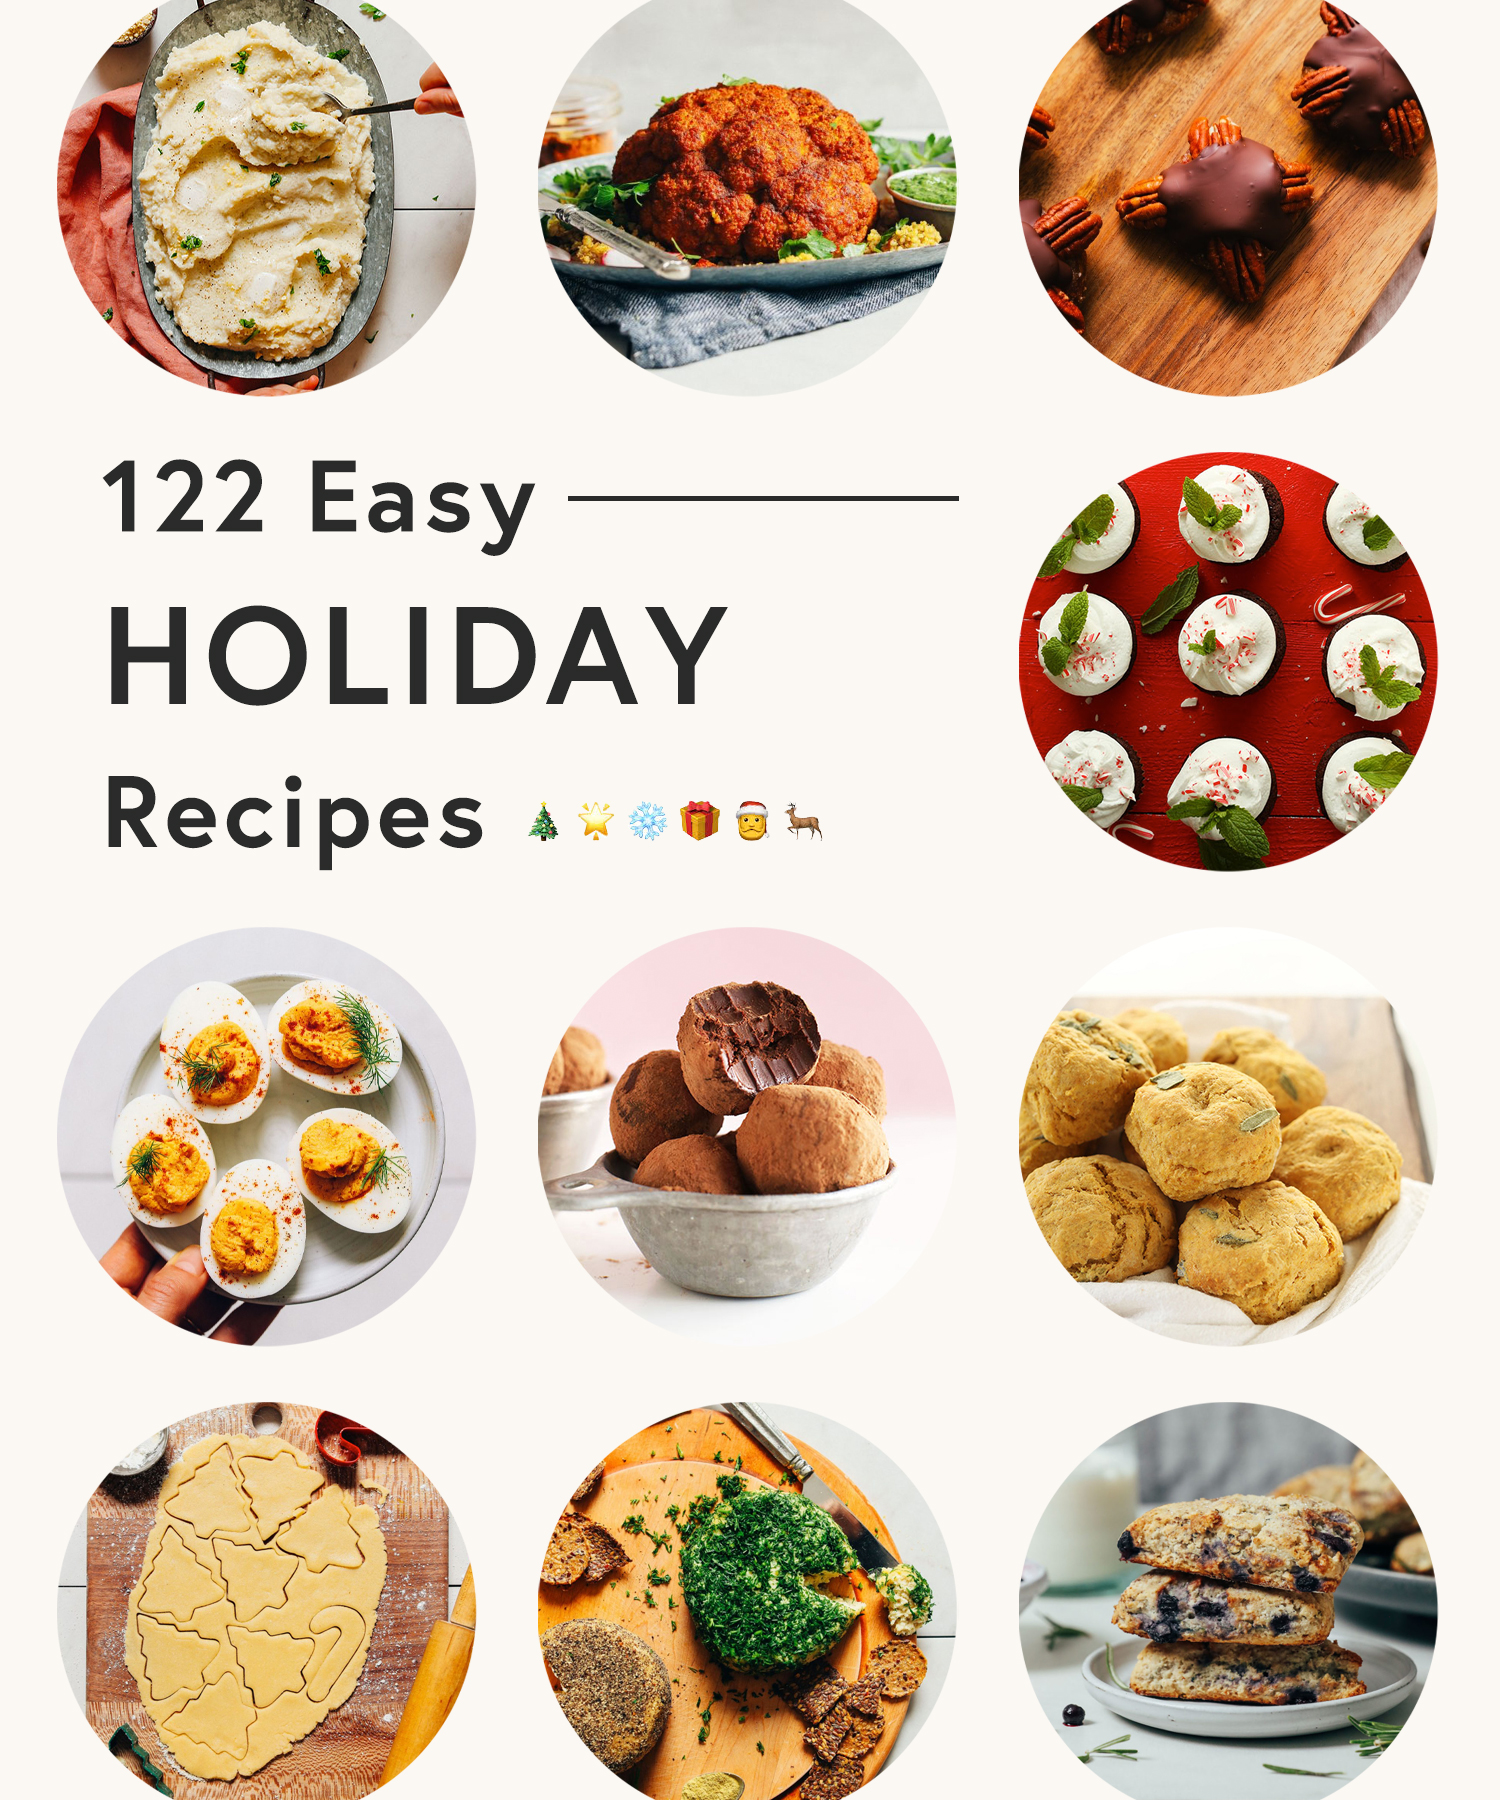 Collection of photos of easy holiday recipes